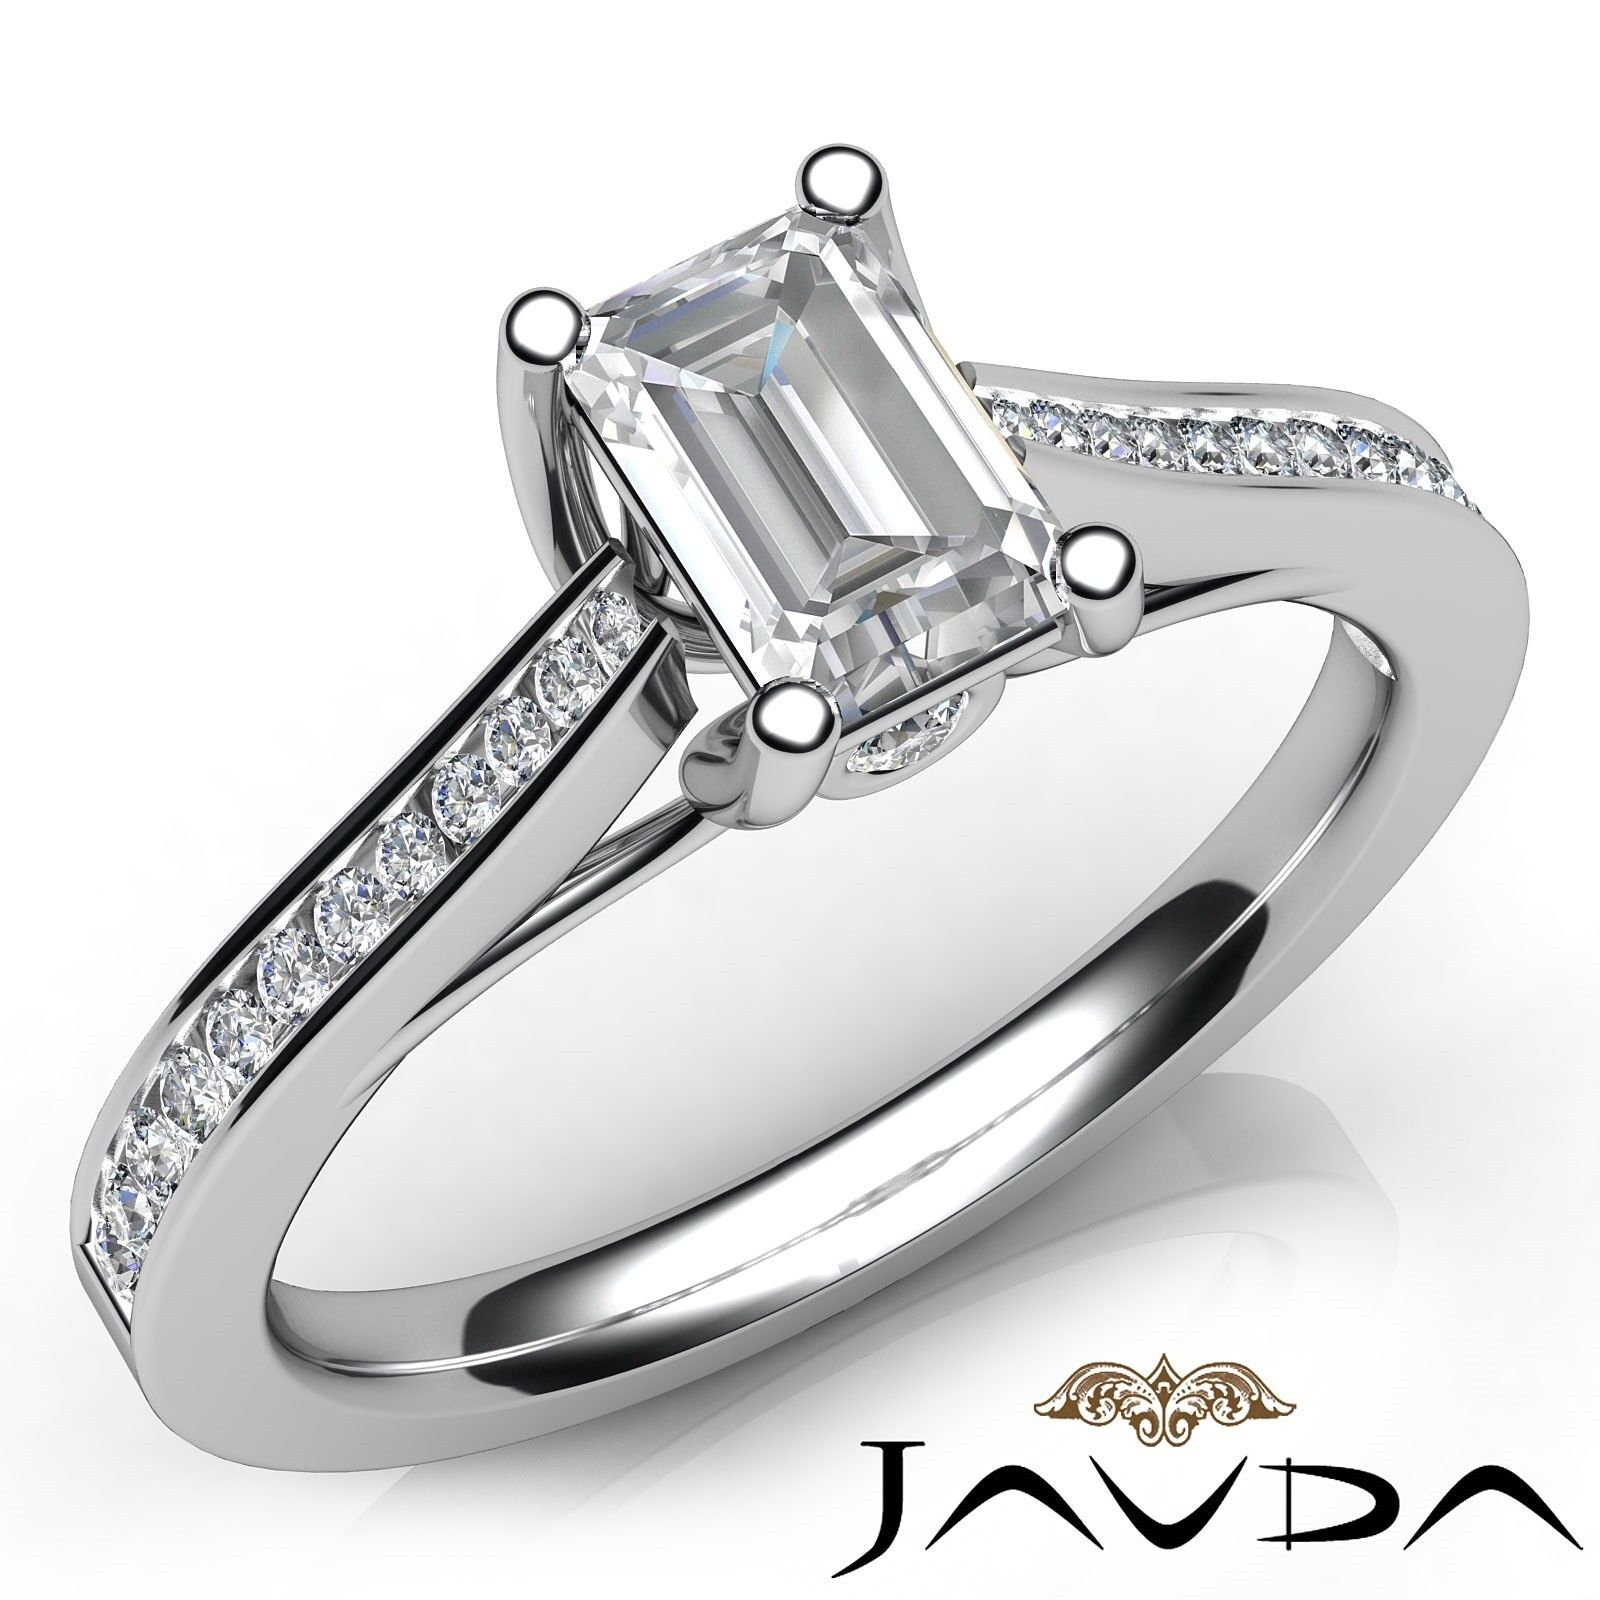 1.03ctw Channel Set Emerald Diamond Engagement Ring Band GIA H-SI1 White Gold